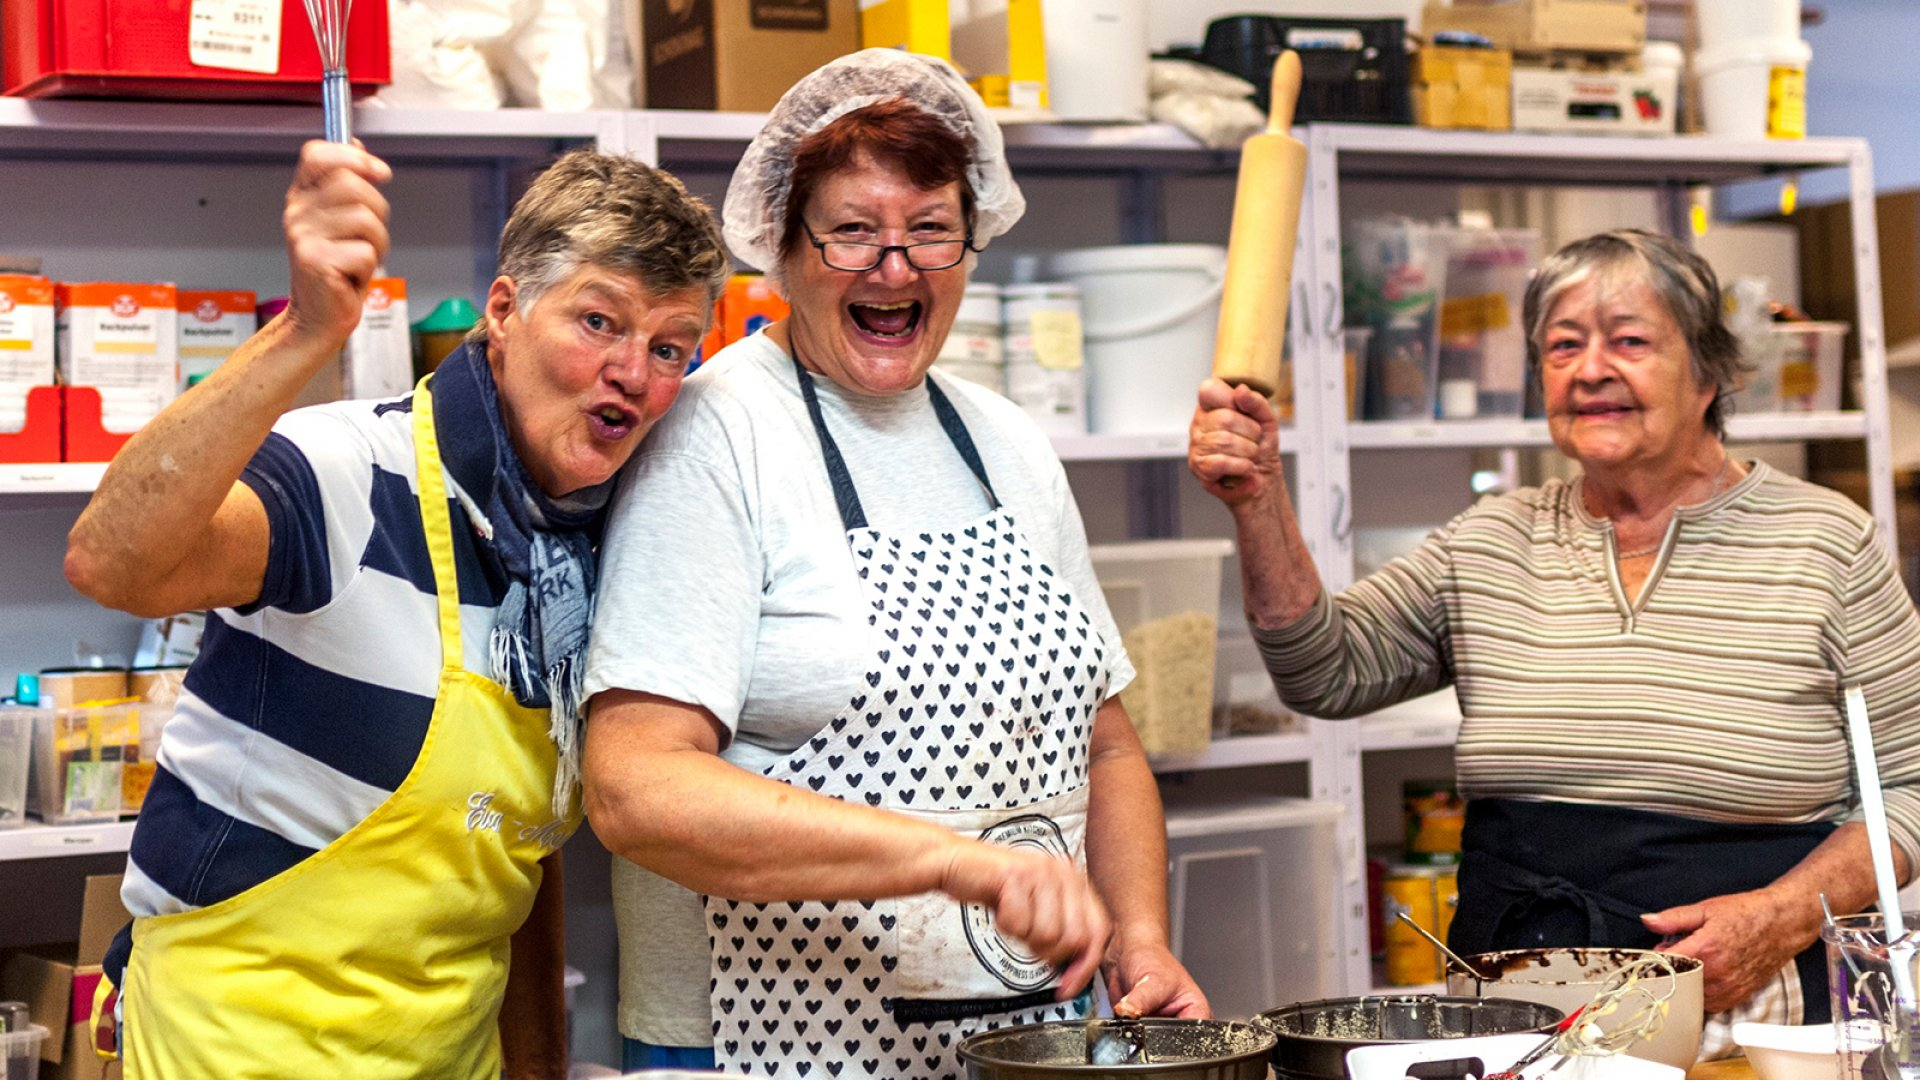 The more than 35 retired seniors who enjoy socializing and baking cakes together at Kuchentratsch's Munich, Germany, bakery include Eva-Maria, Moni and Irmgard.